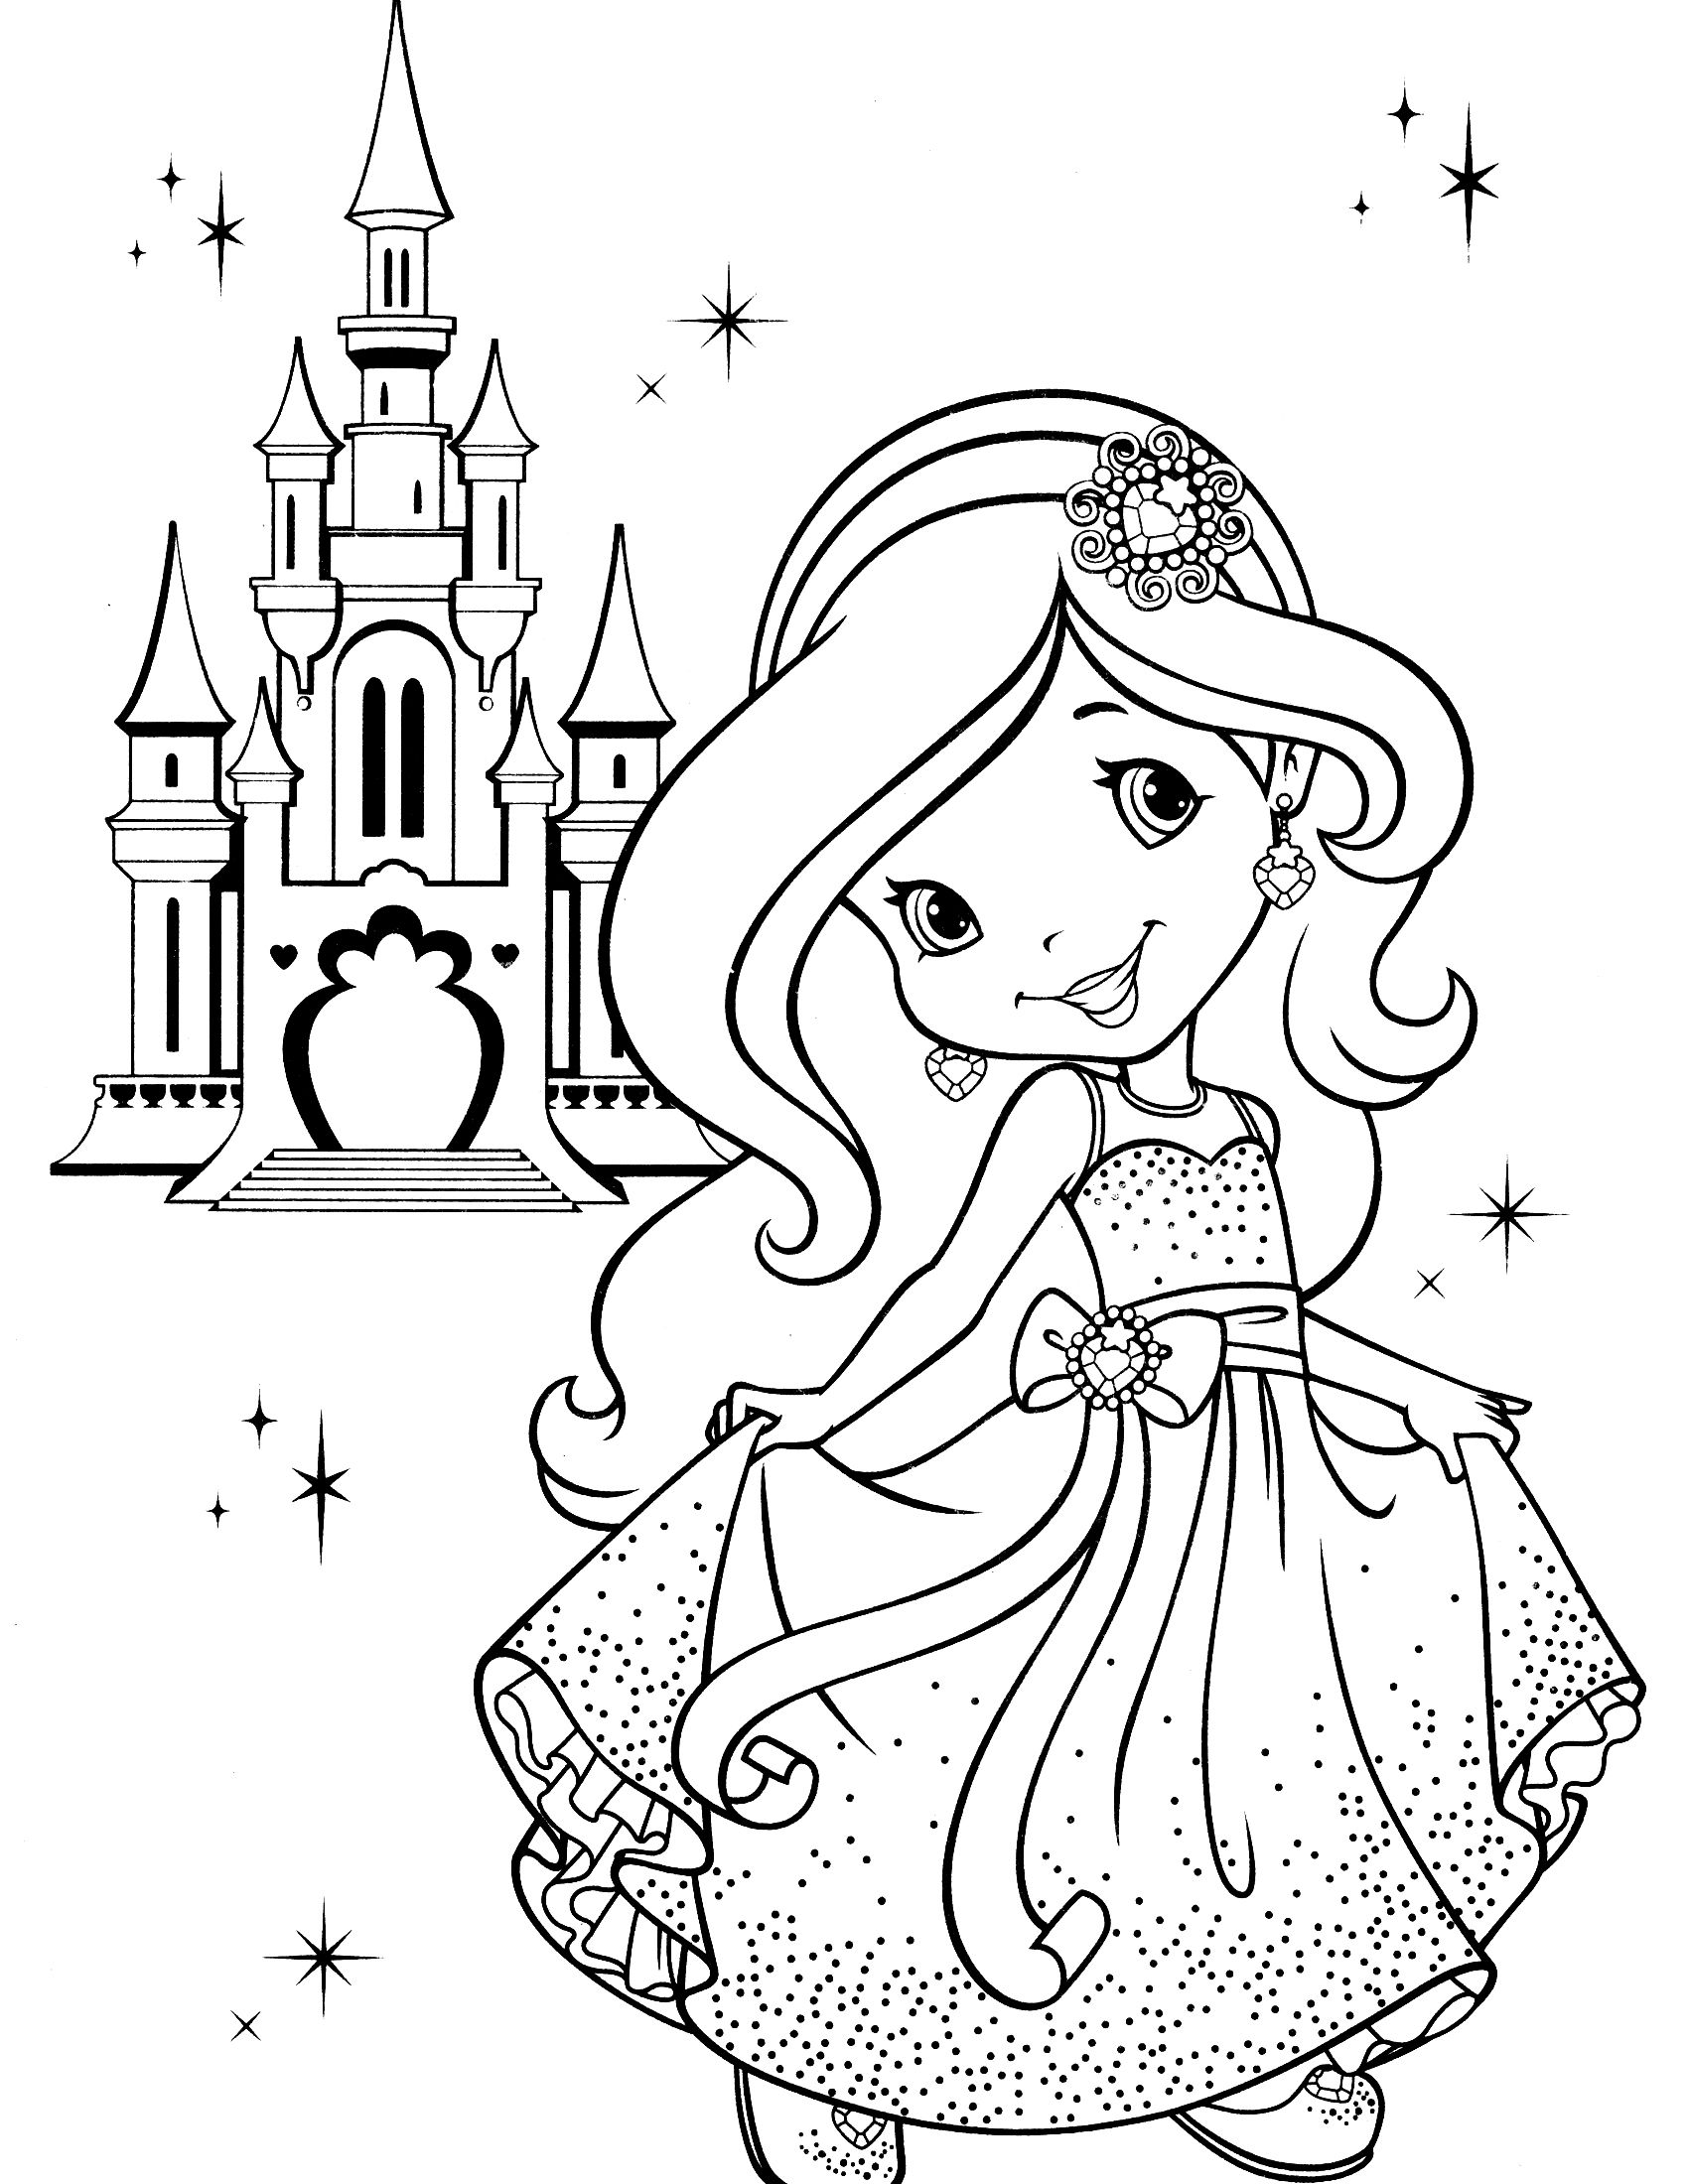 Adult Cute Printable Strawberry Shortcake Coloring Pages Gallery Images top 1000 images about coloring strawberry shortcake on pinterest pages and birt